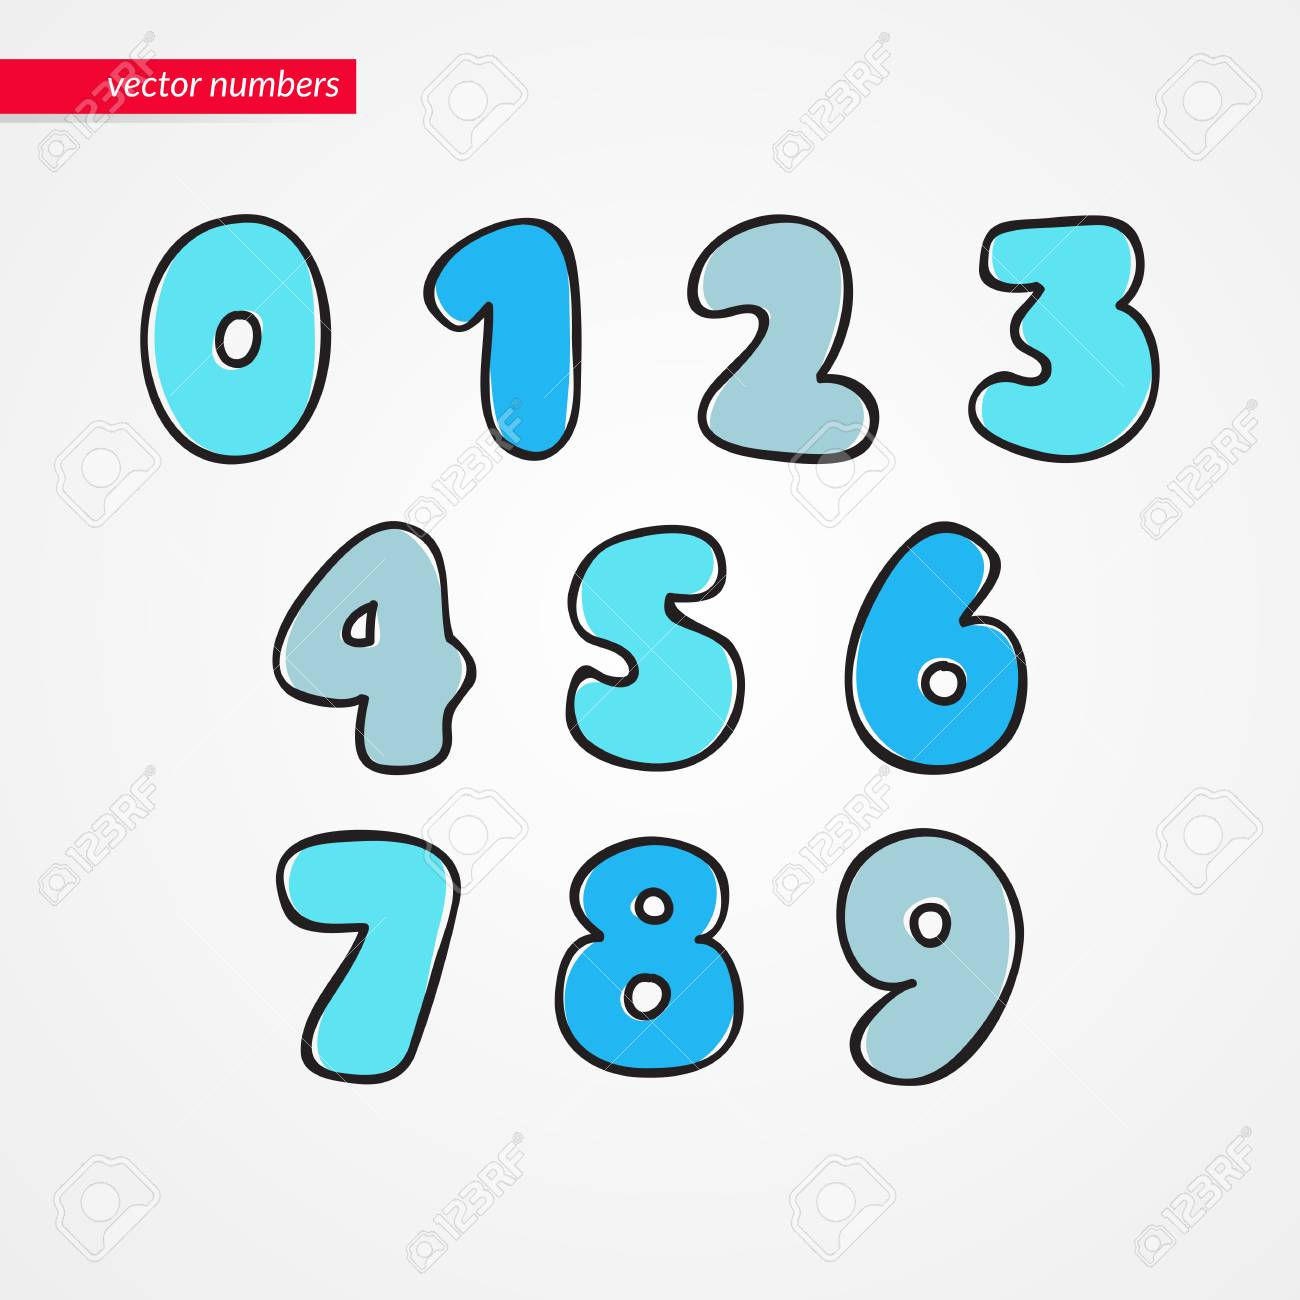 Sketch Numbers Decorative Funny Isolated 0 1 2 3 4 5 6 7 8 9